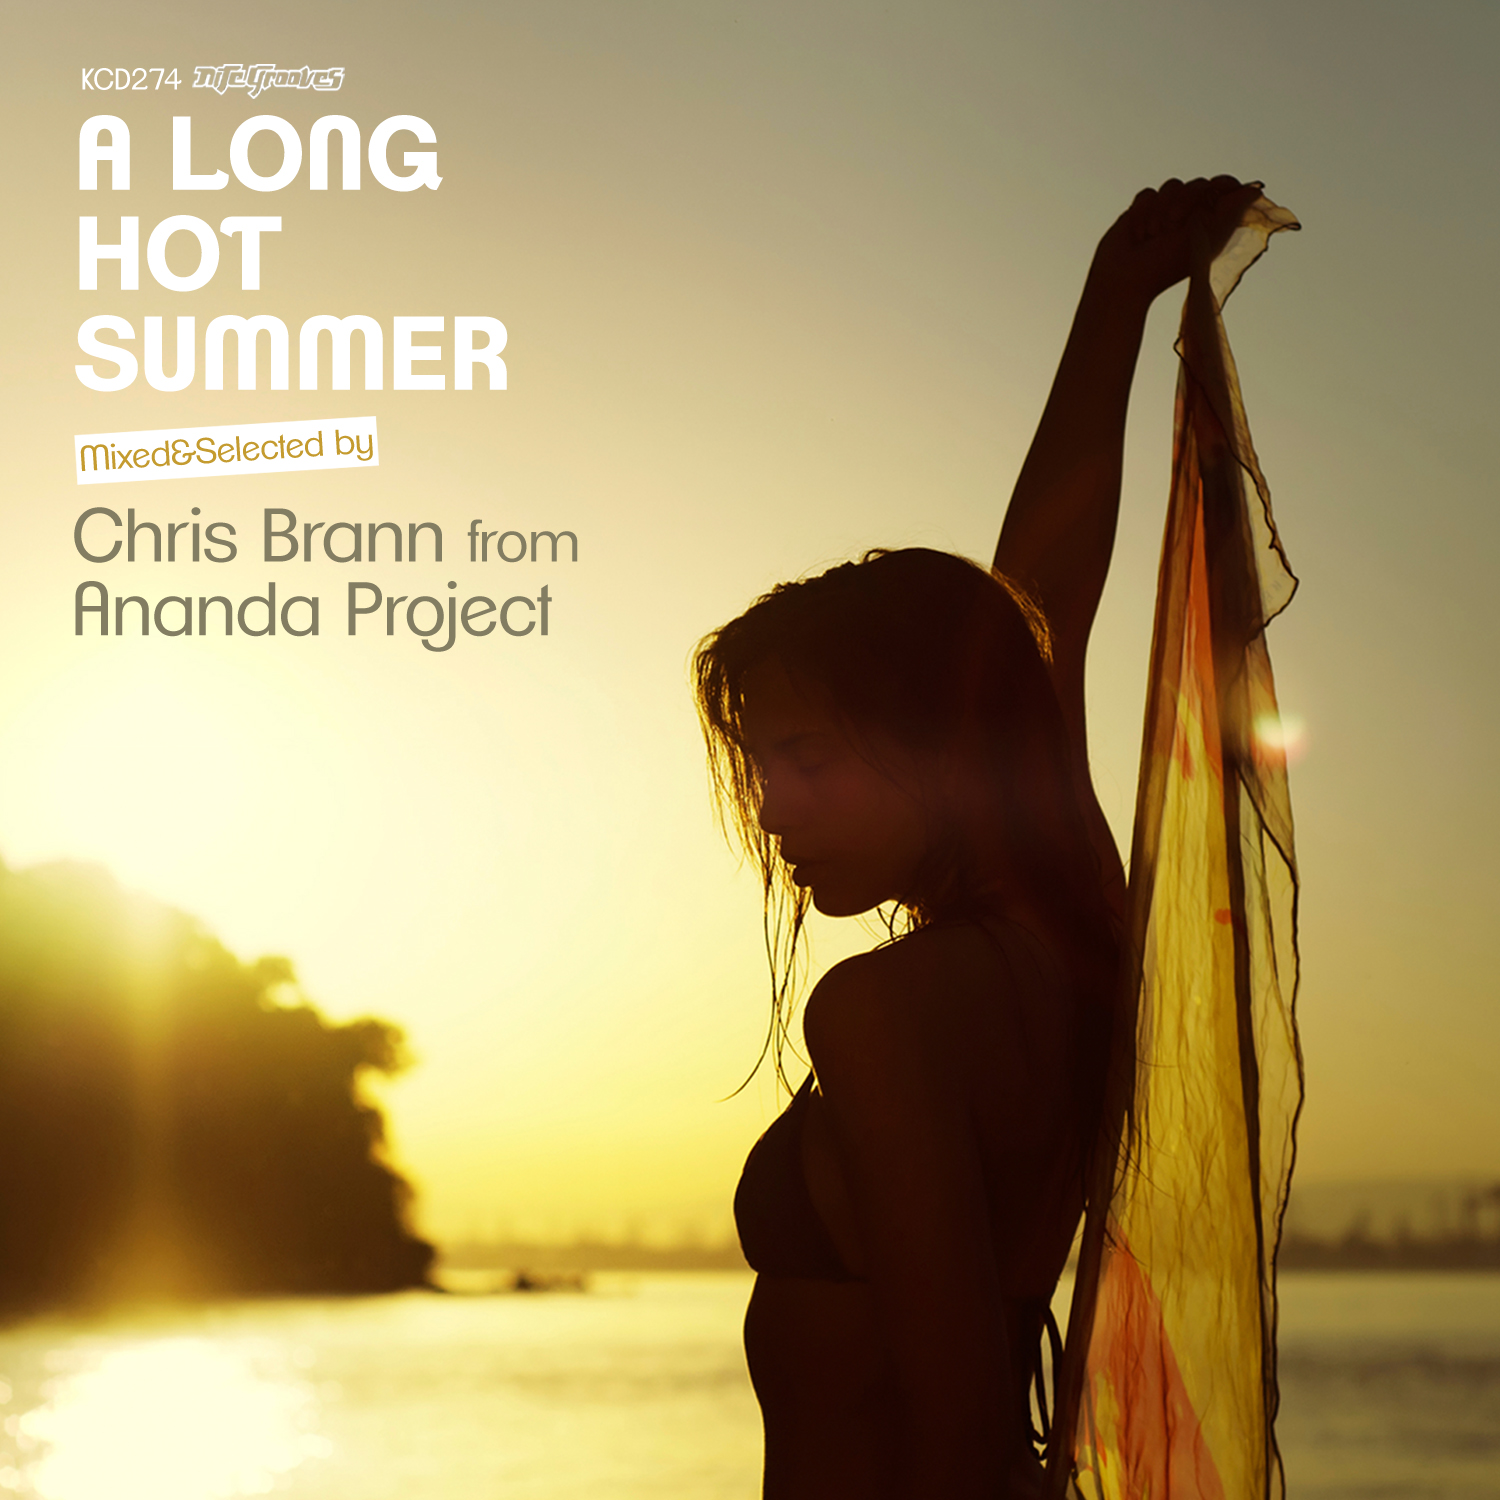 A Long Hot Summer – mixed by Chriss Brann (Nite Grooves)